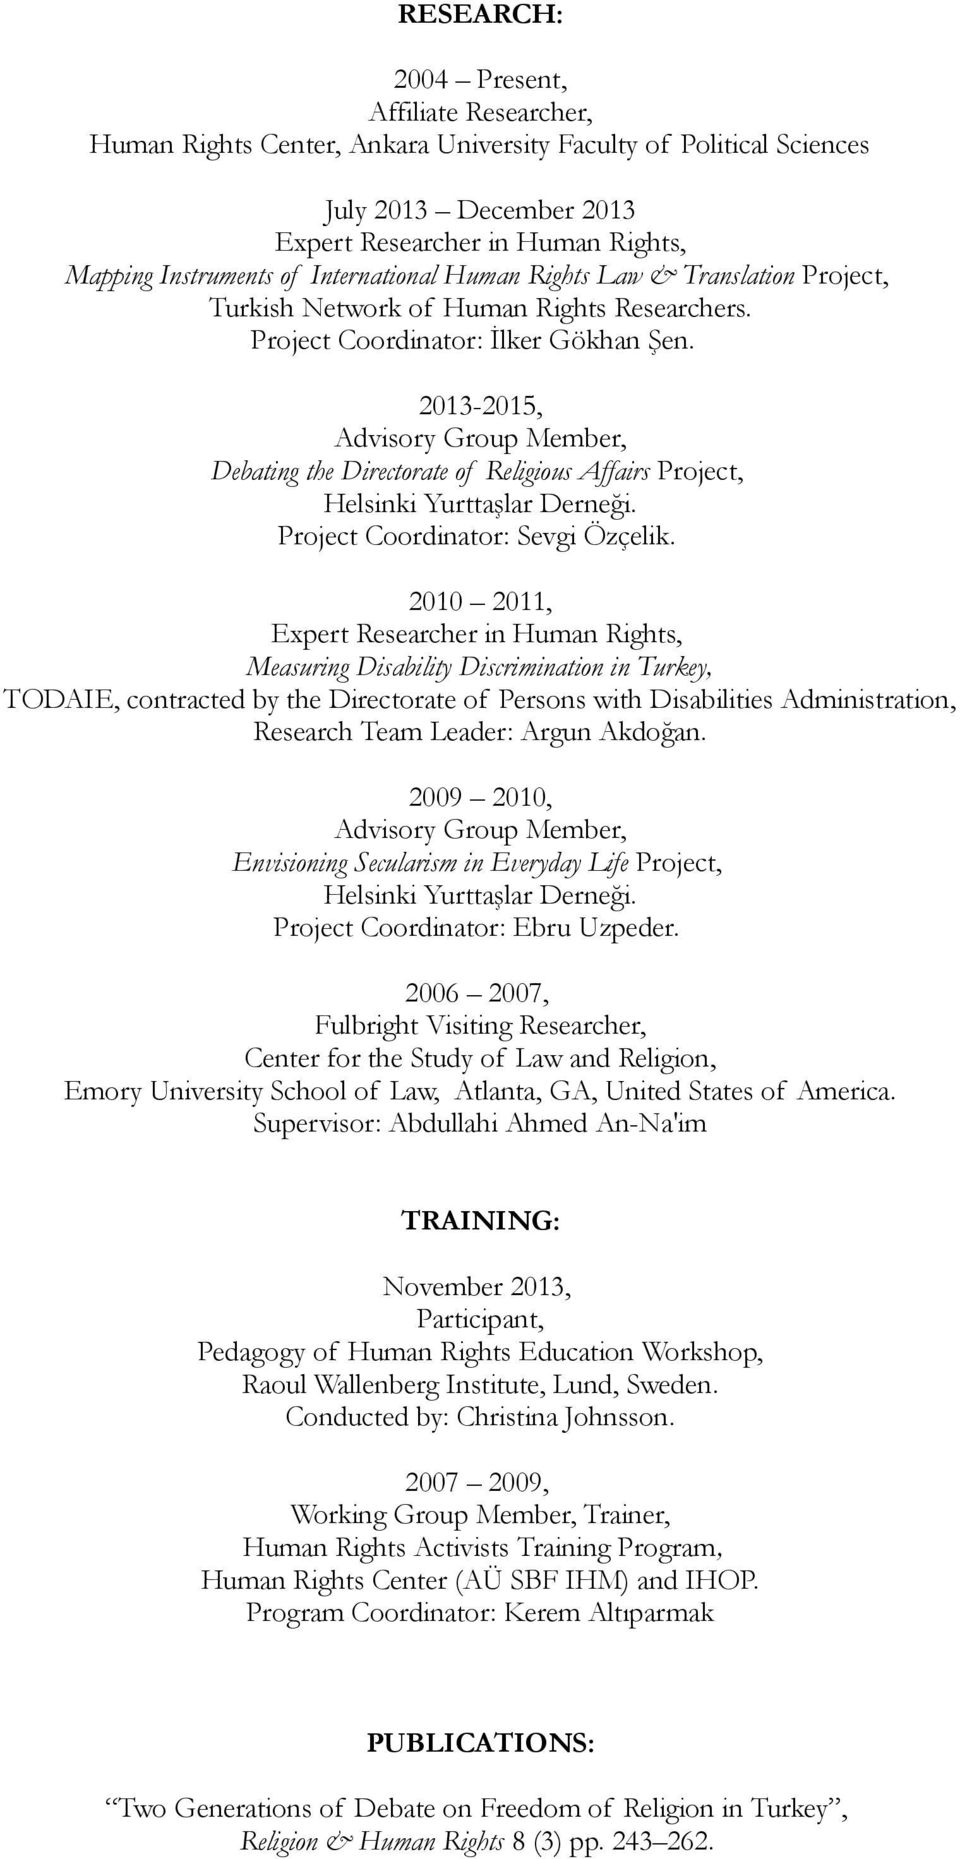 2013-2015, Advisory Group Member, Debating the Directorate of Religious Affairs Project, Helsinki Yurttaşlar Derneği. Project Coordinator: Sevgi Özçelik.